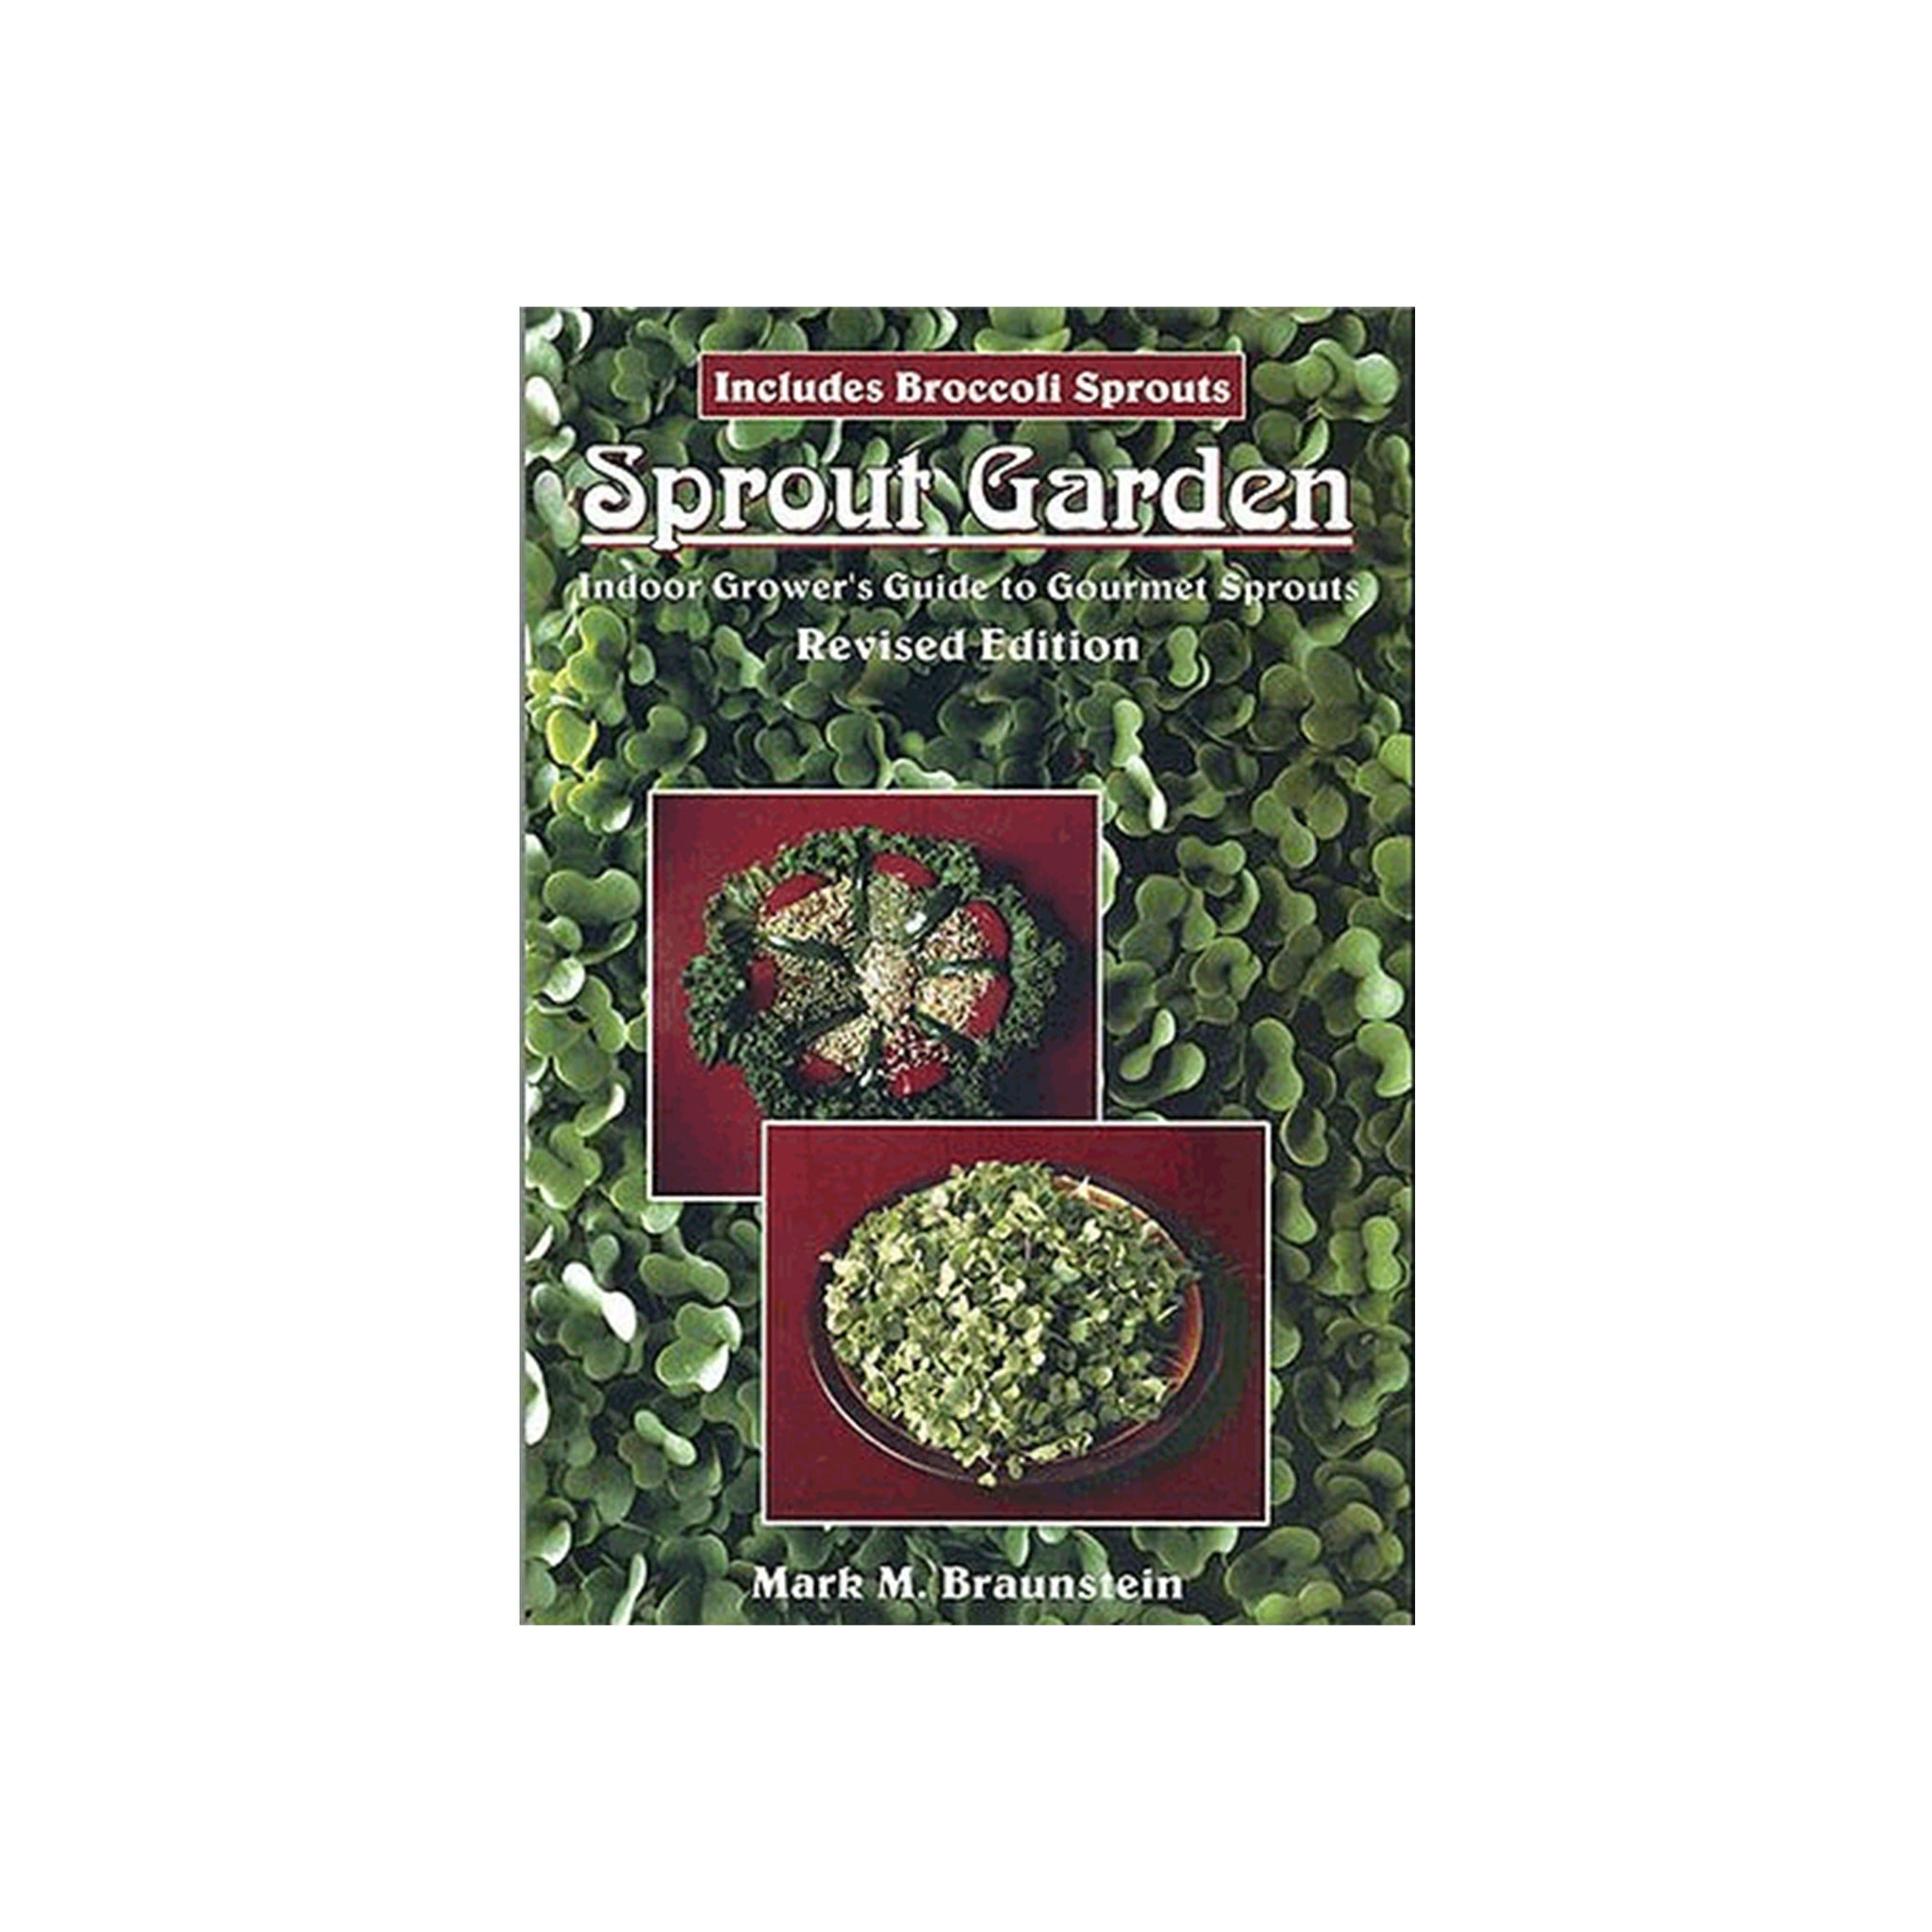 Foods Alive - Sprout Garden book by Mark M. Braunstein